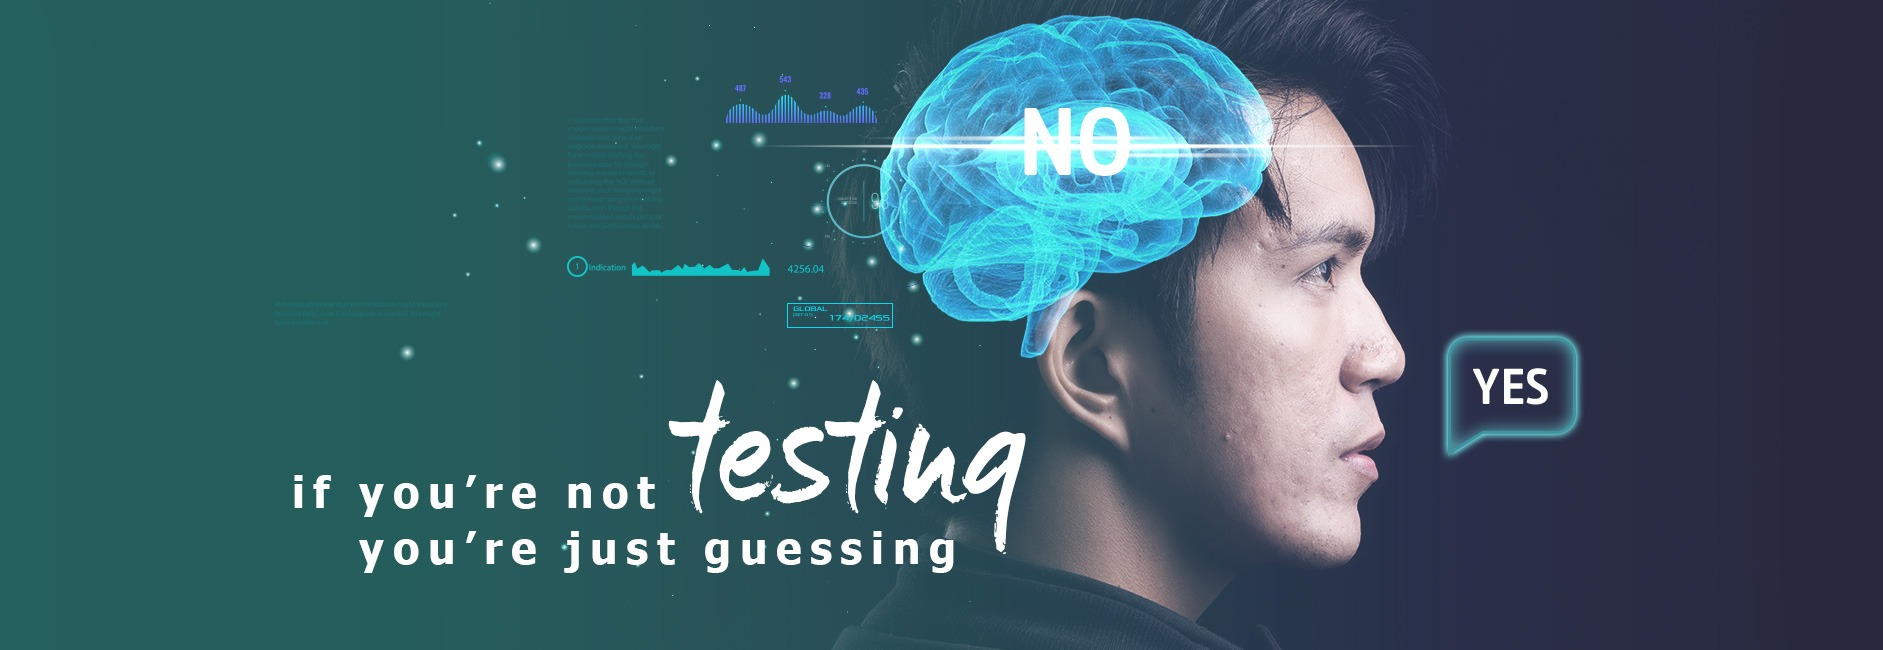 If You're Not Testing You're Just Guessing